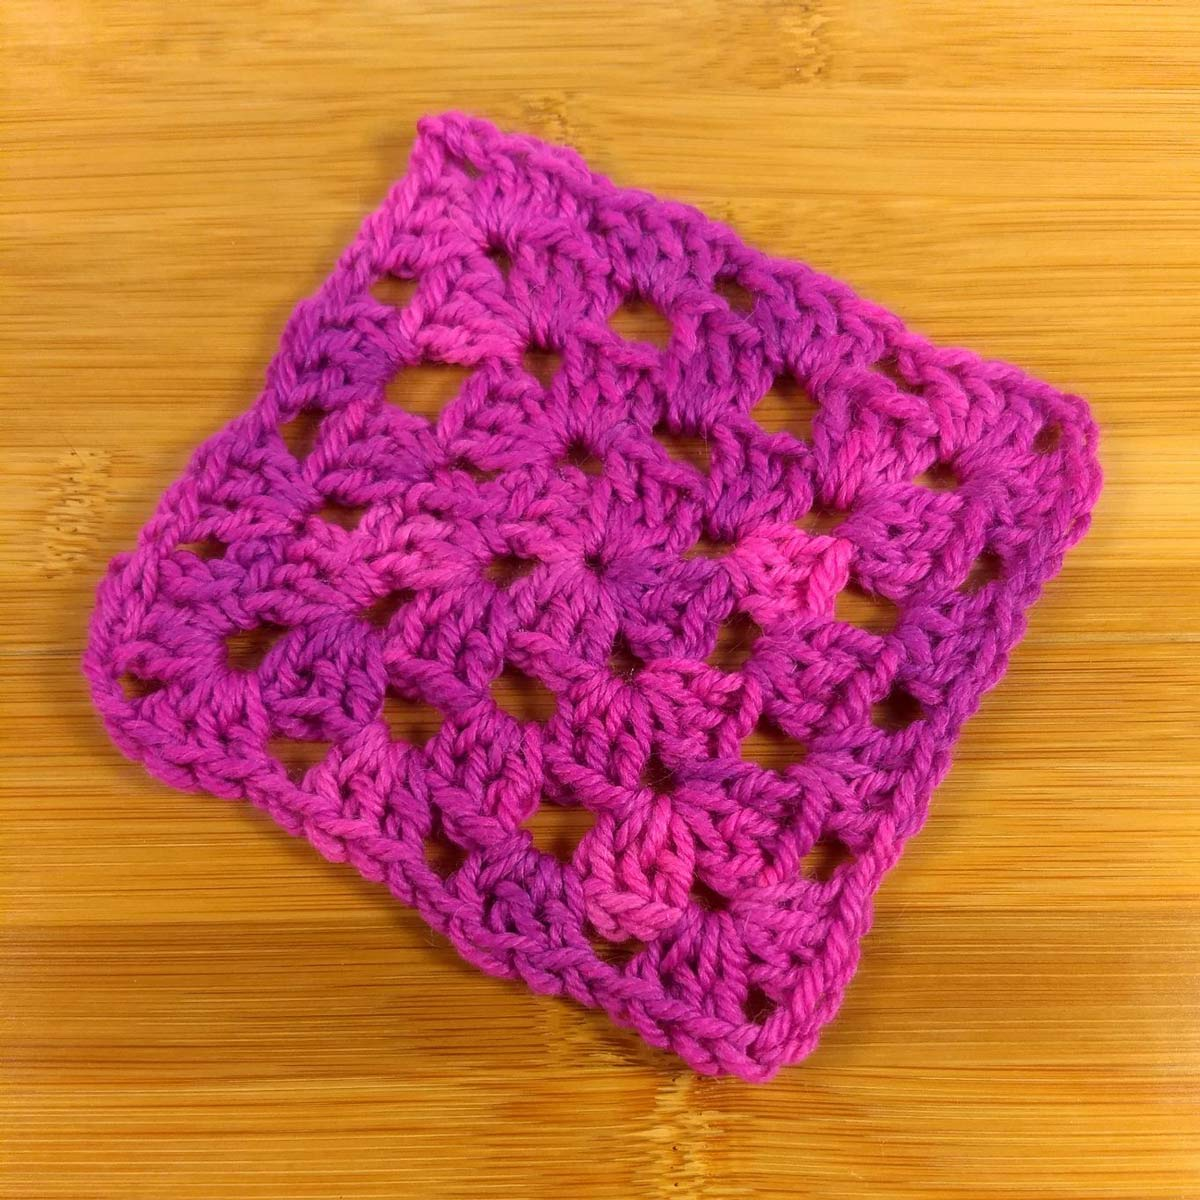 Ava crochet swatch, granny square